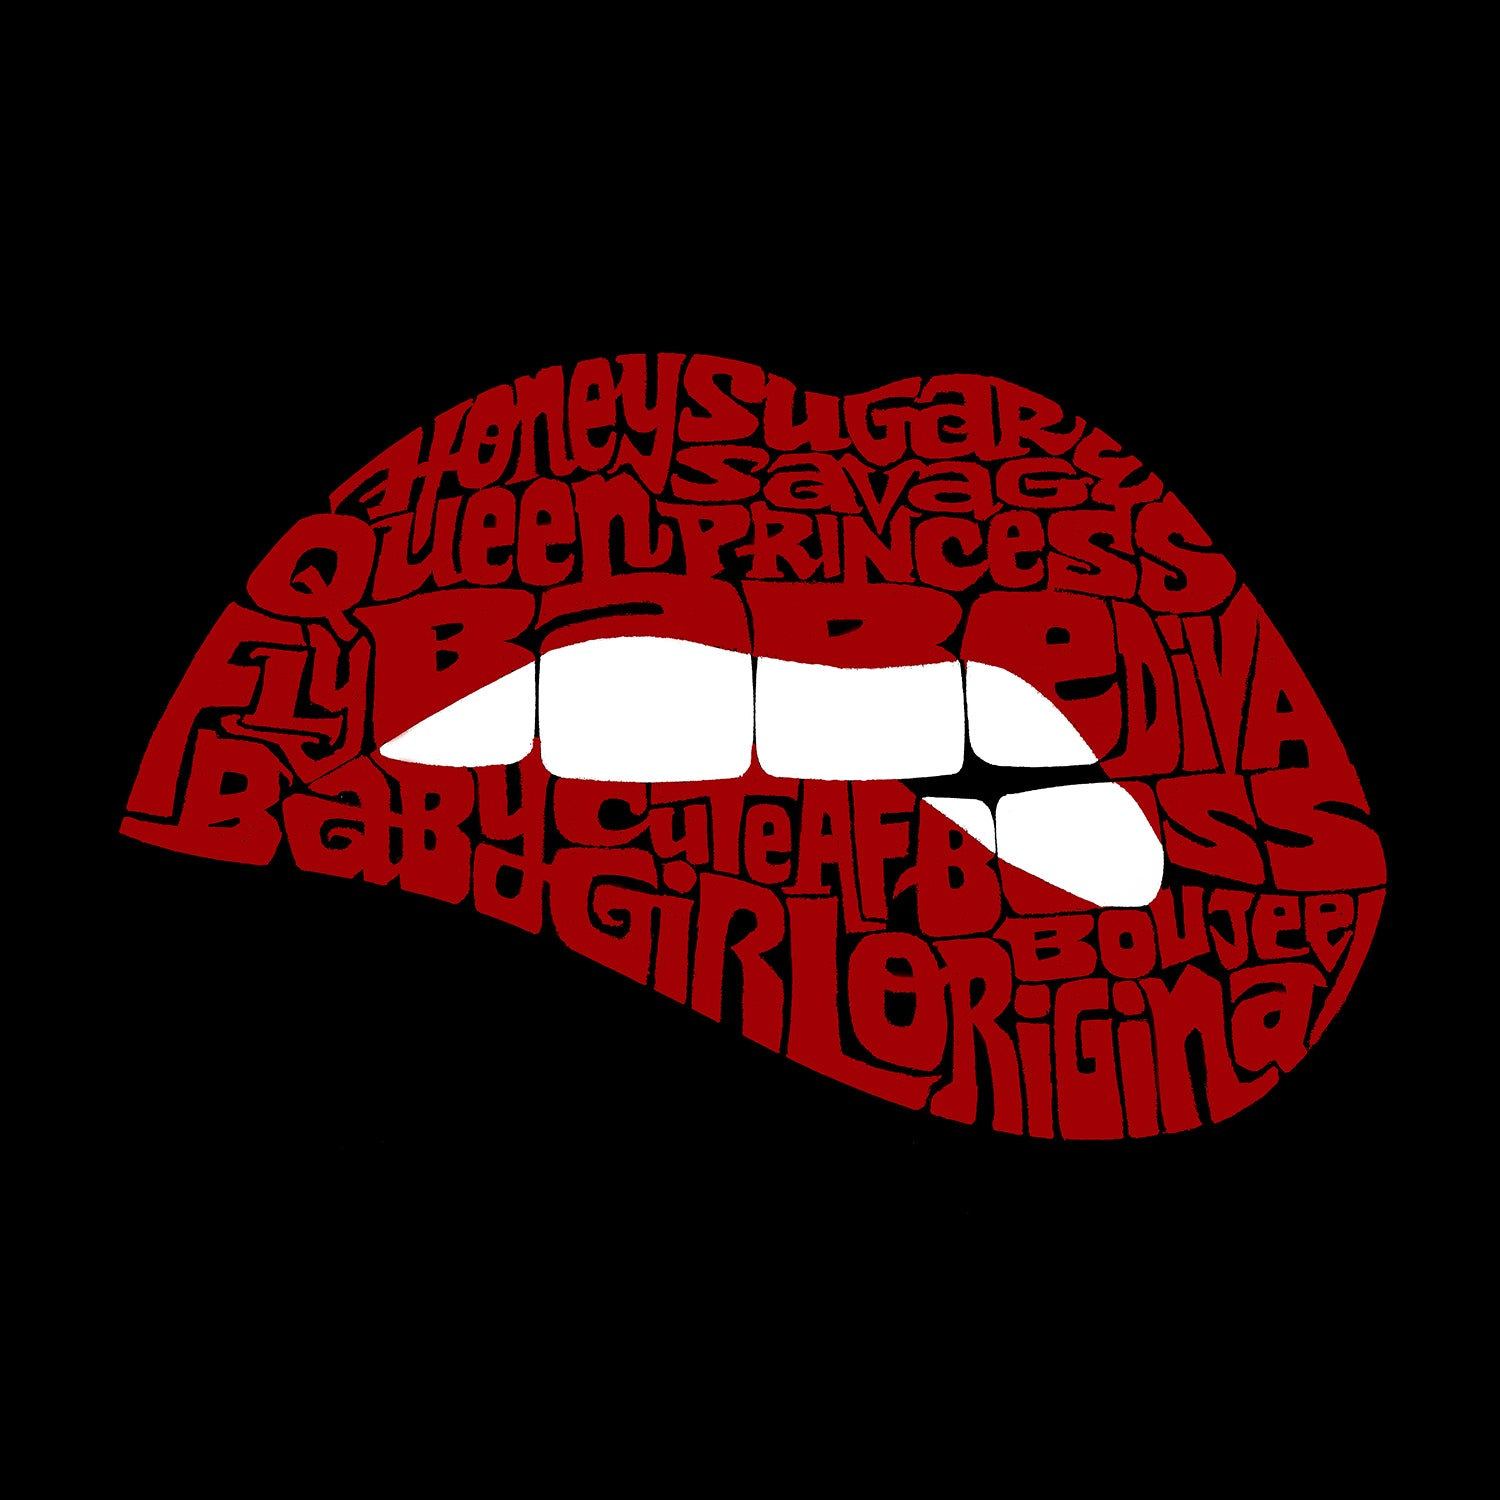 LA Pop Art Men's Premium Blend Word Art T-shirt - Savage Lips